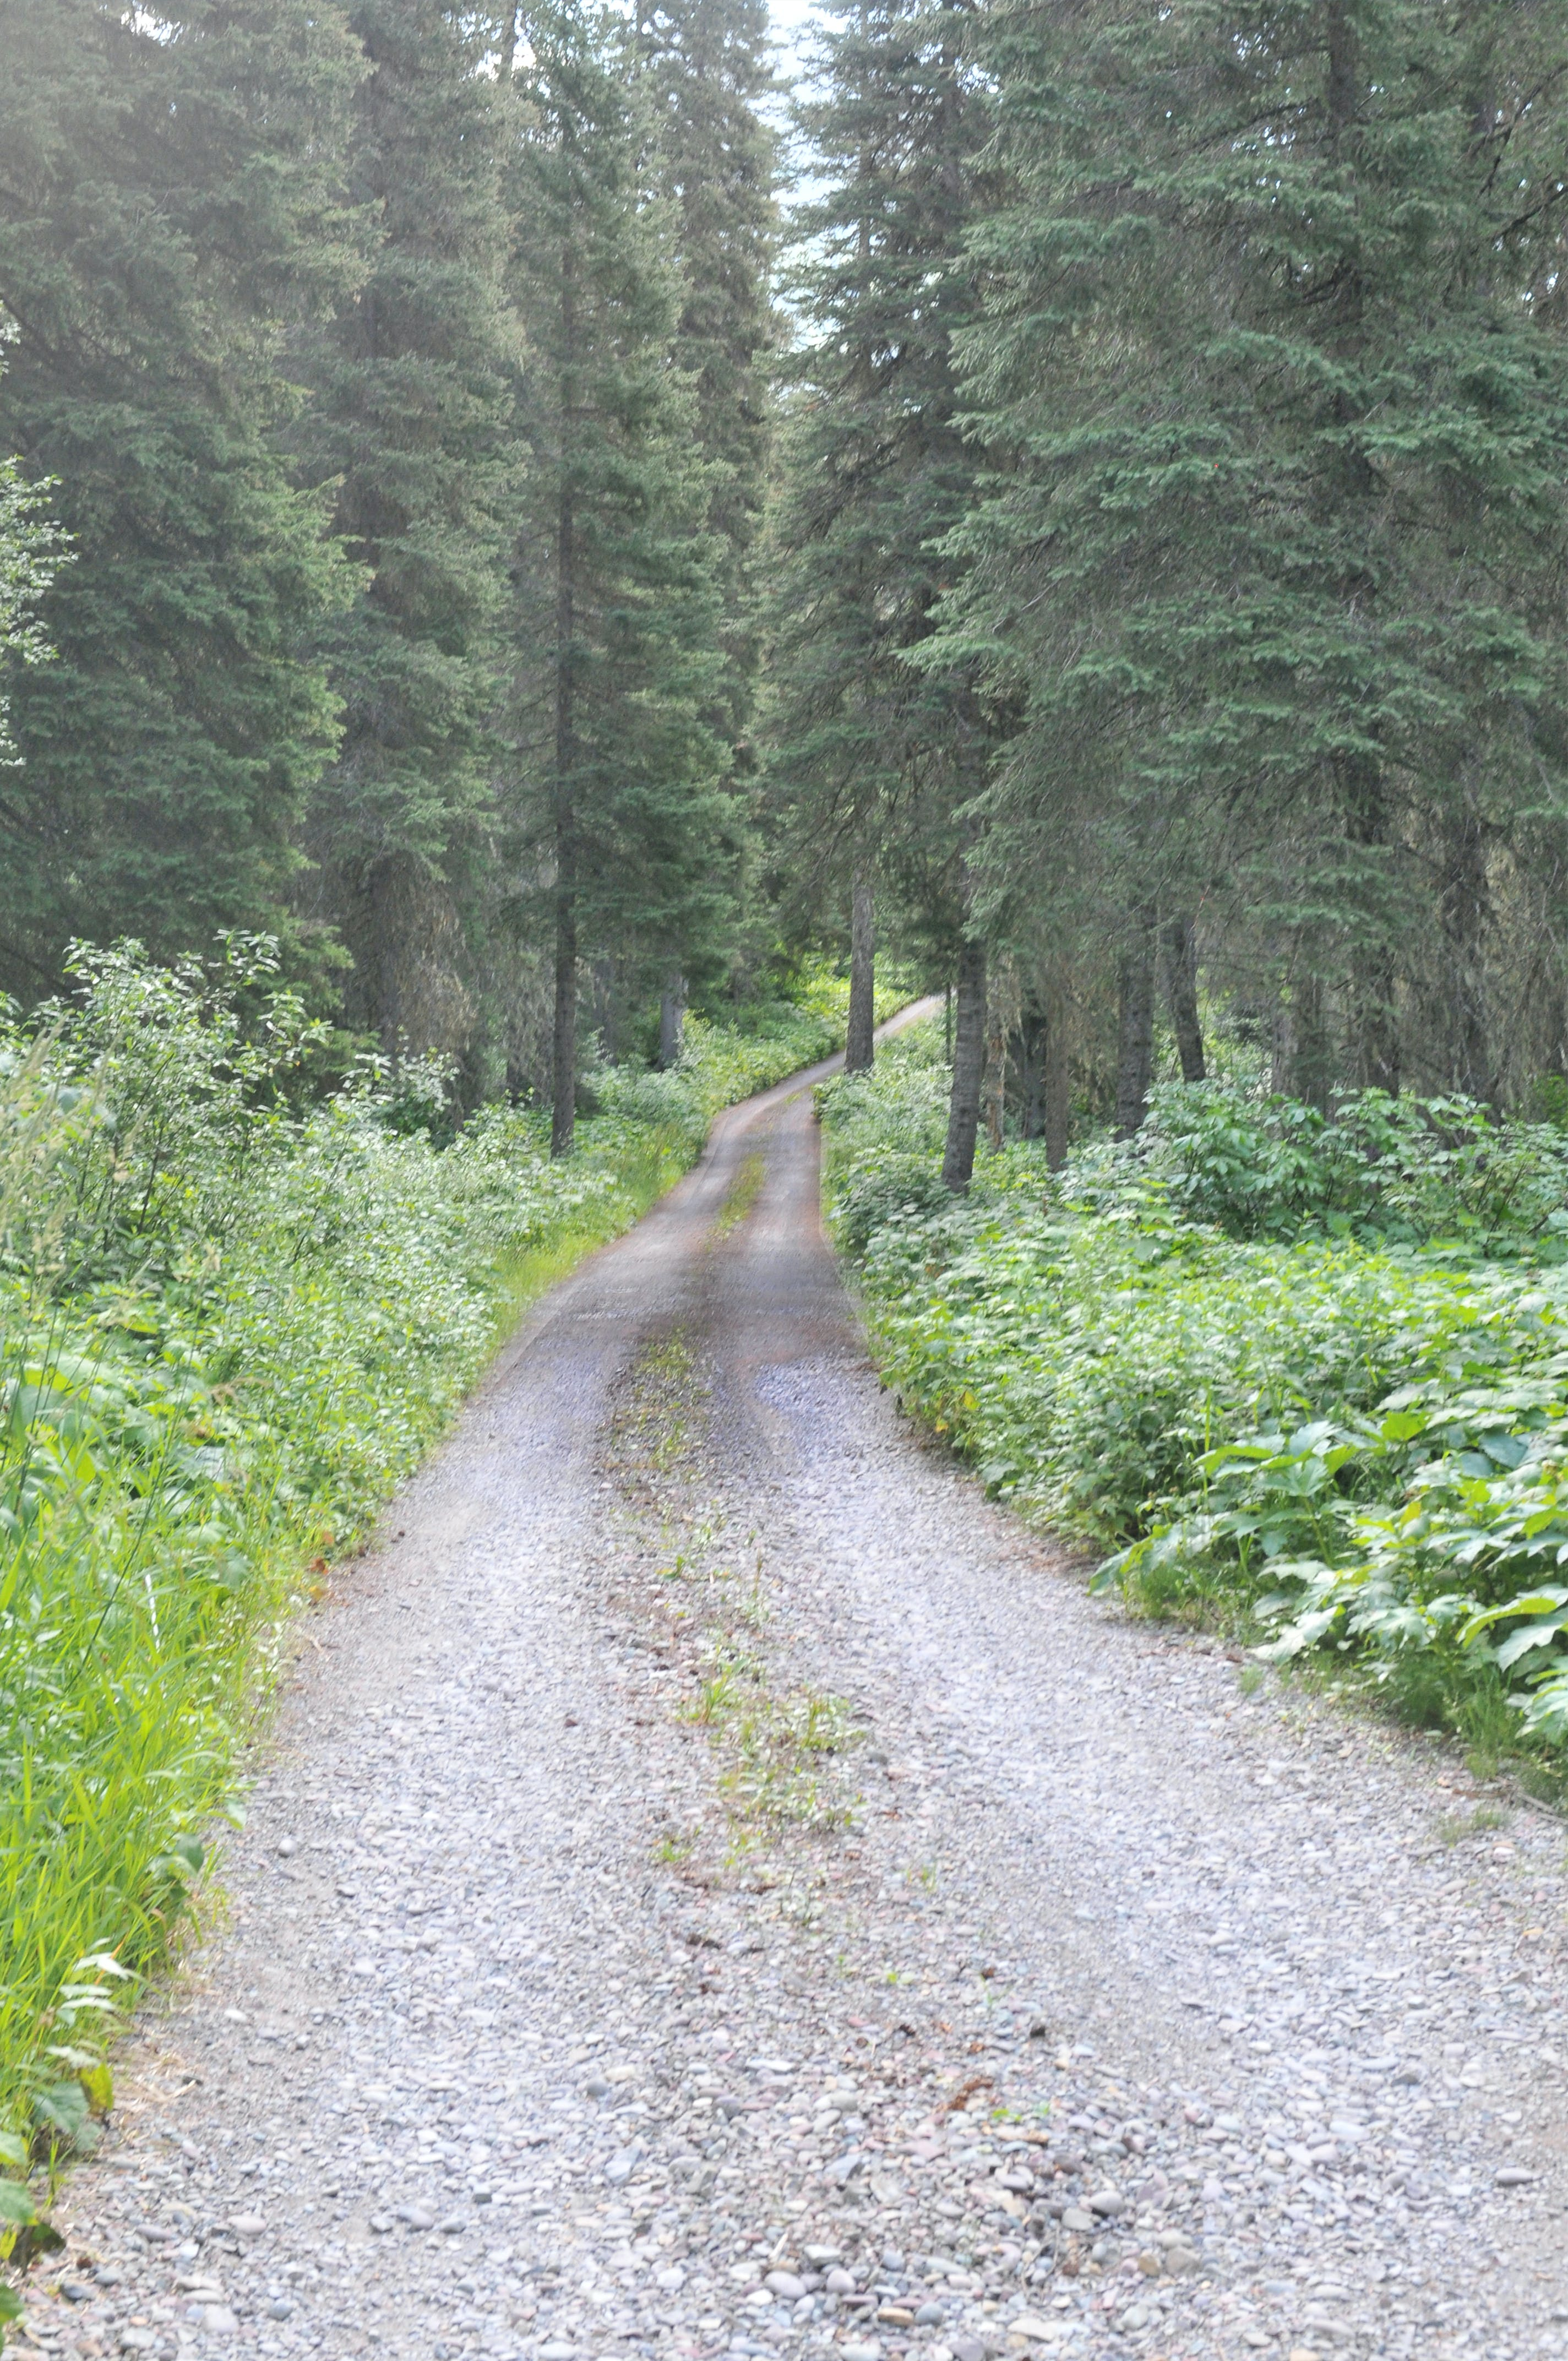 Free stock photo of road, path, travel, dirt road